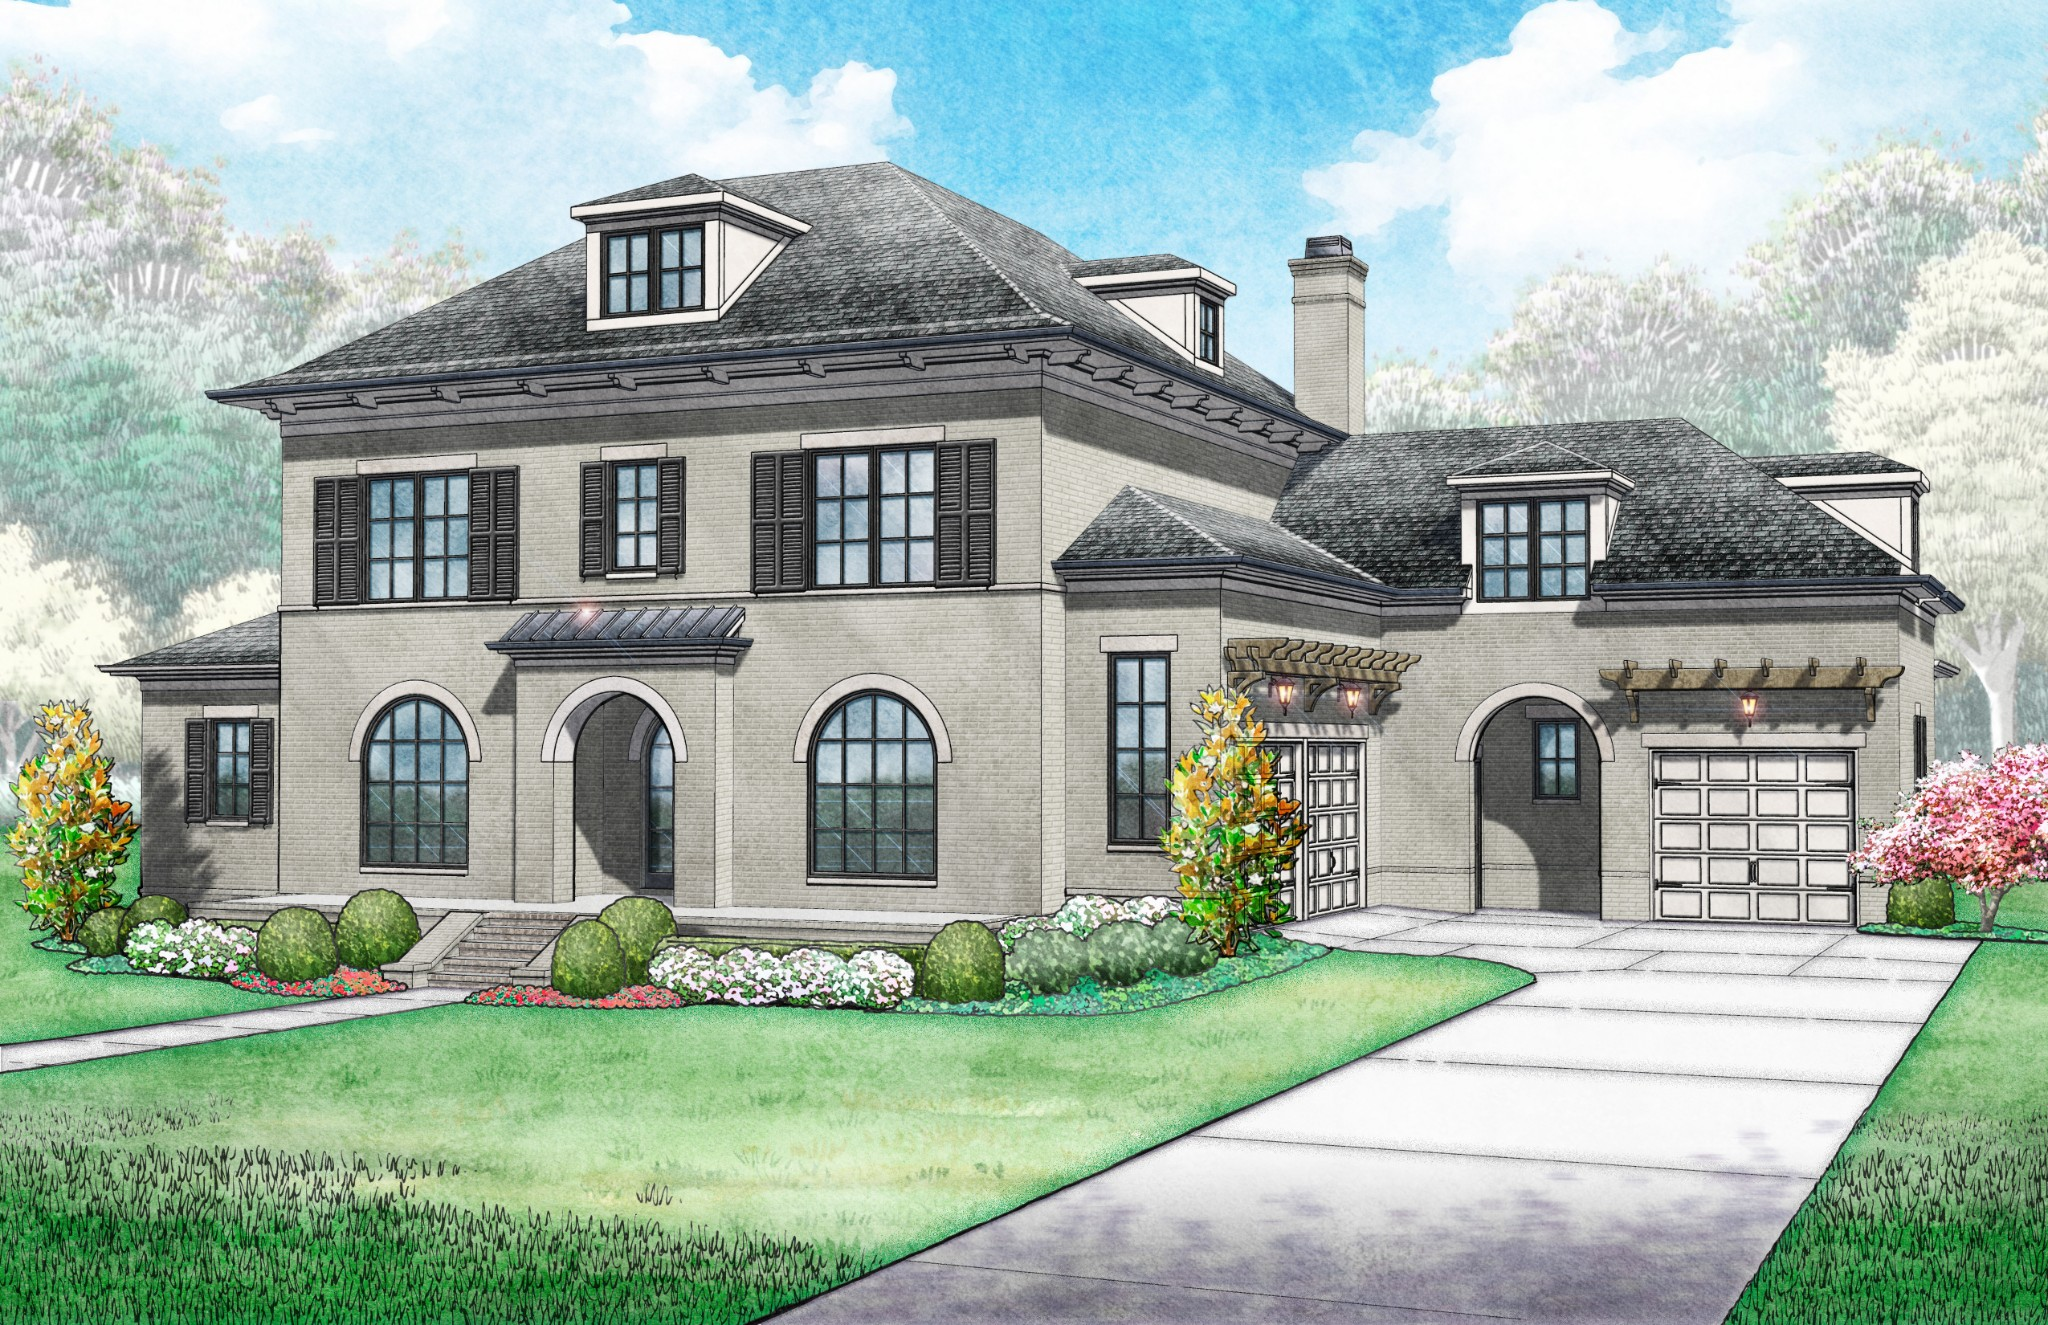 This stately 4,731sq. ft. Ford Classic Homes, w/ magnificent master bedroom w/ vaulted ceiling and large walk-in closet. Terrific floor plan w/ 2 bedrooms and a study on the main level & 2 ensuite bedrooms + bonus room & a game room on the 2nd level, w/ unfinished future expansion space over the garage. Open/Great Room living, dining and exquisite kitchen are perfect for entertaining and lead to two covered porch areas, with wood burning fireplace outside.